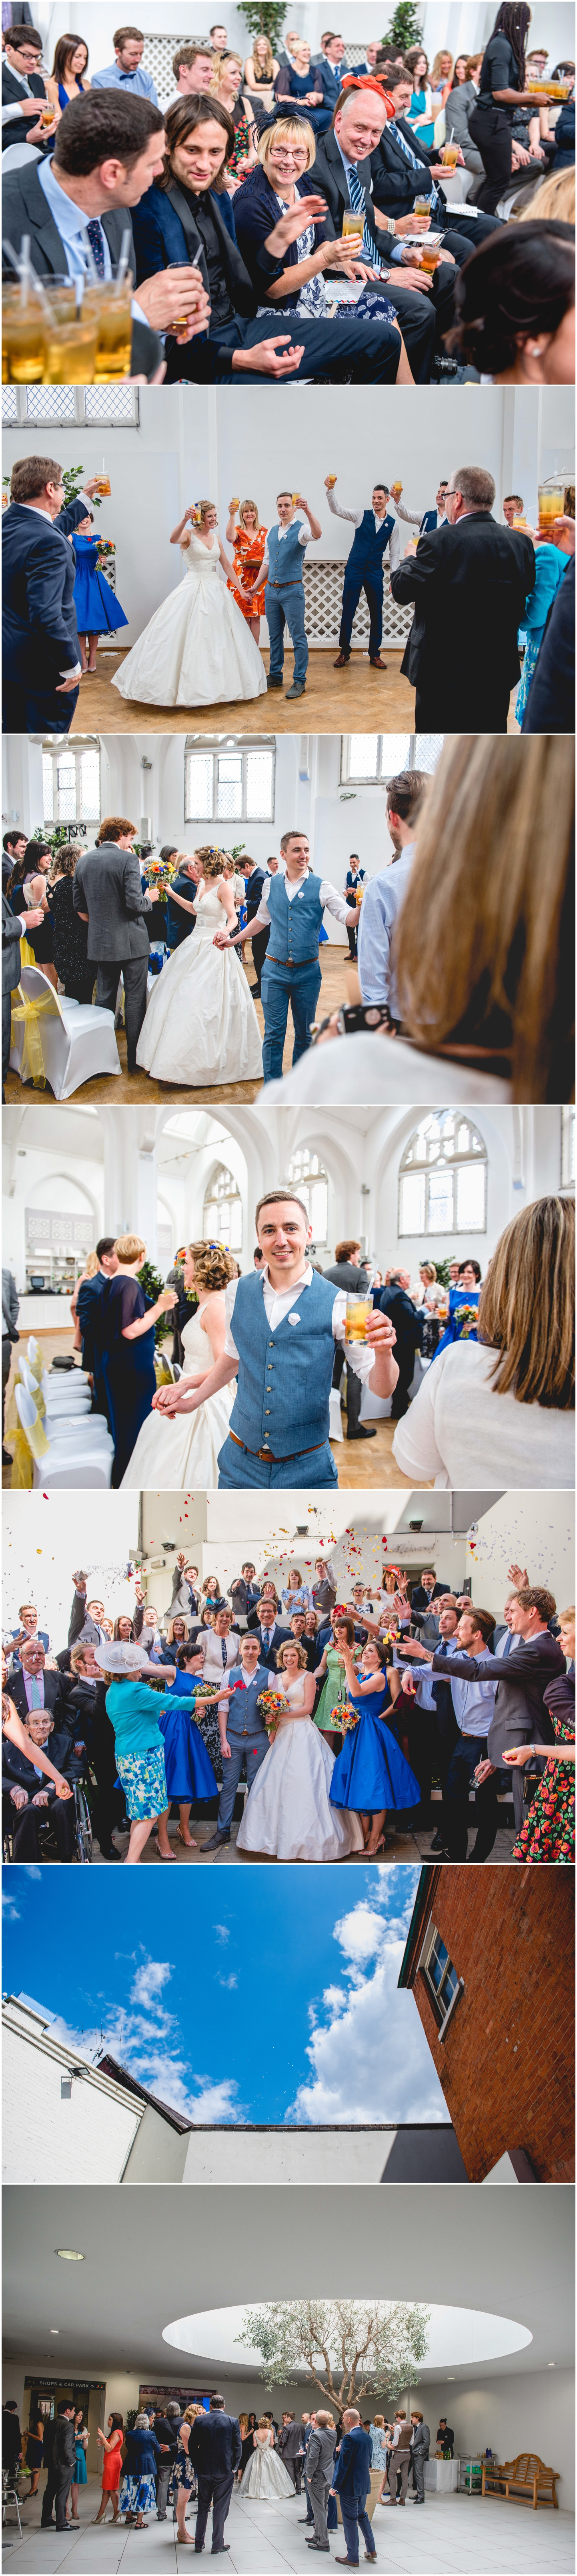 Debra and Matt's colourful Custard Factory Wedding at The Old Library in Digbeth, Birmingham. Photos by Lisa Carpenter Photography, West Midlands based wedding photographer, drinks, celebration